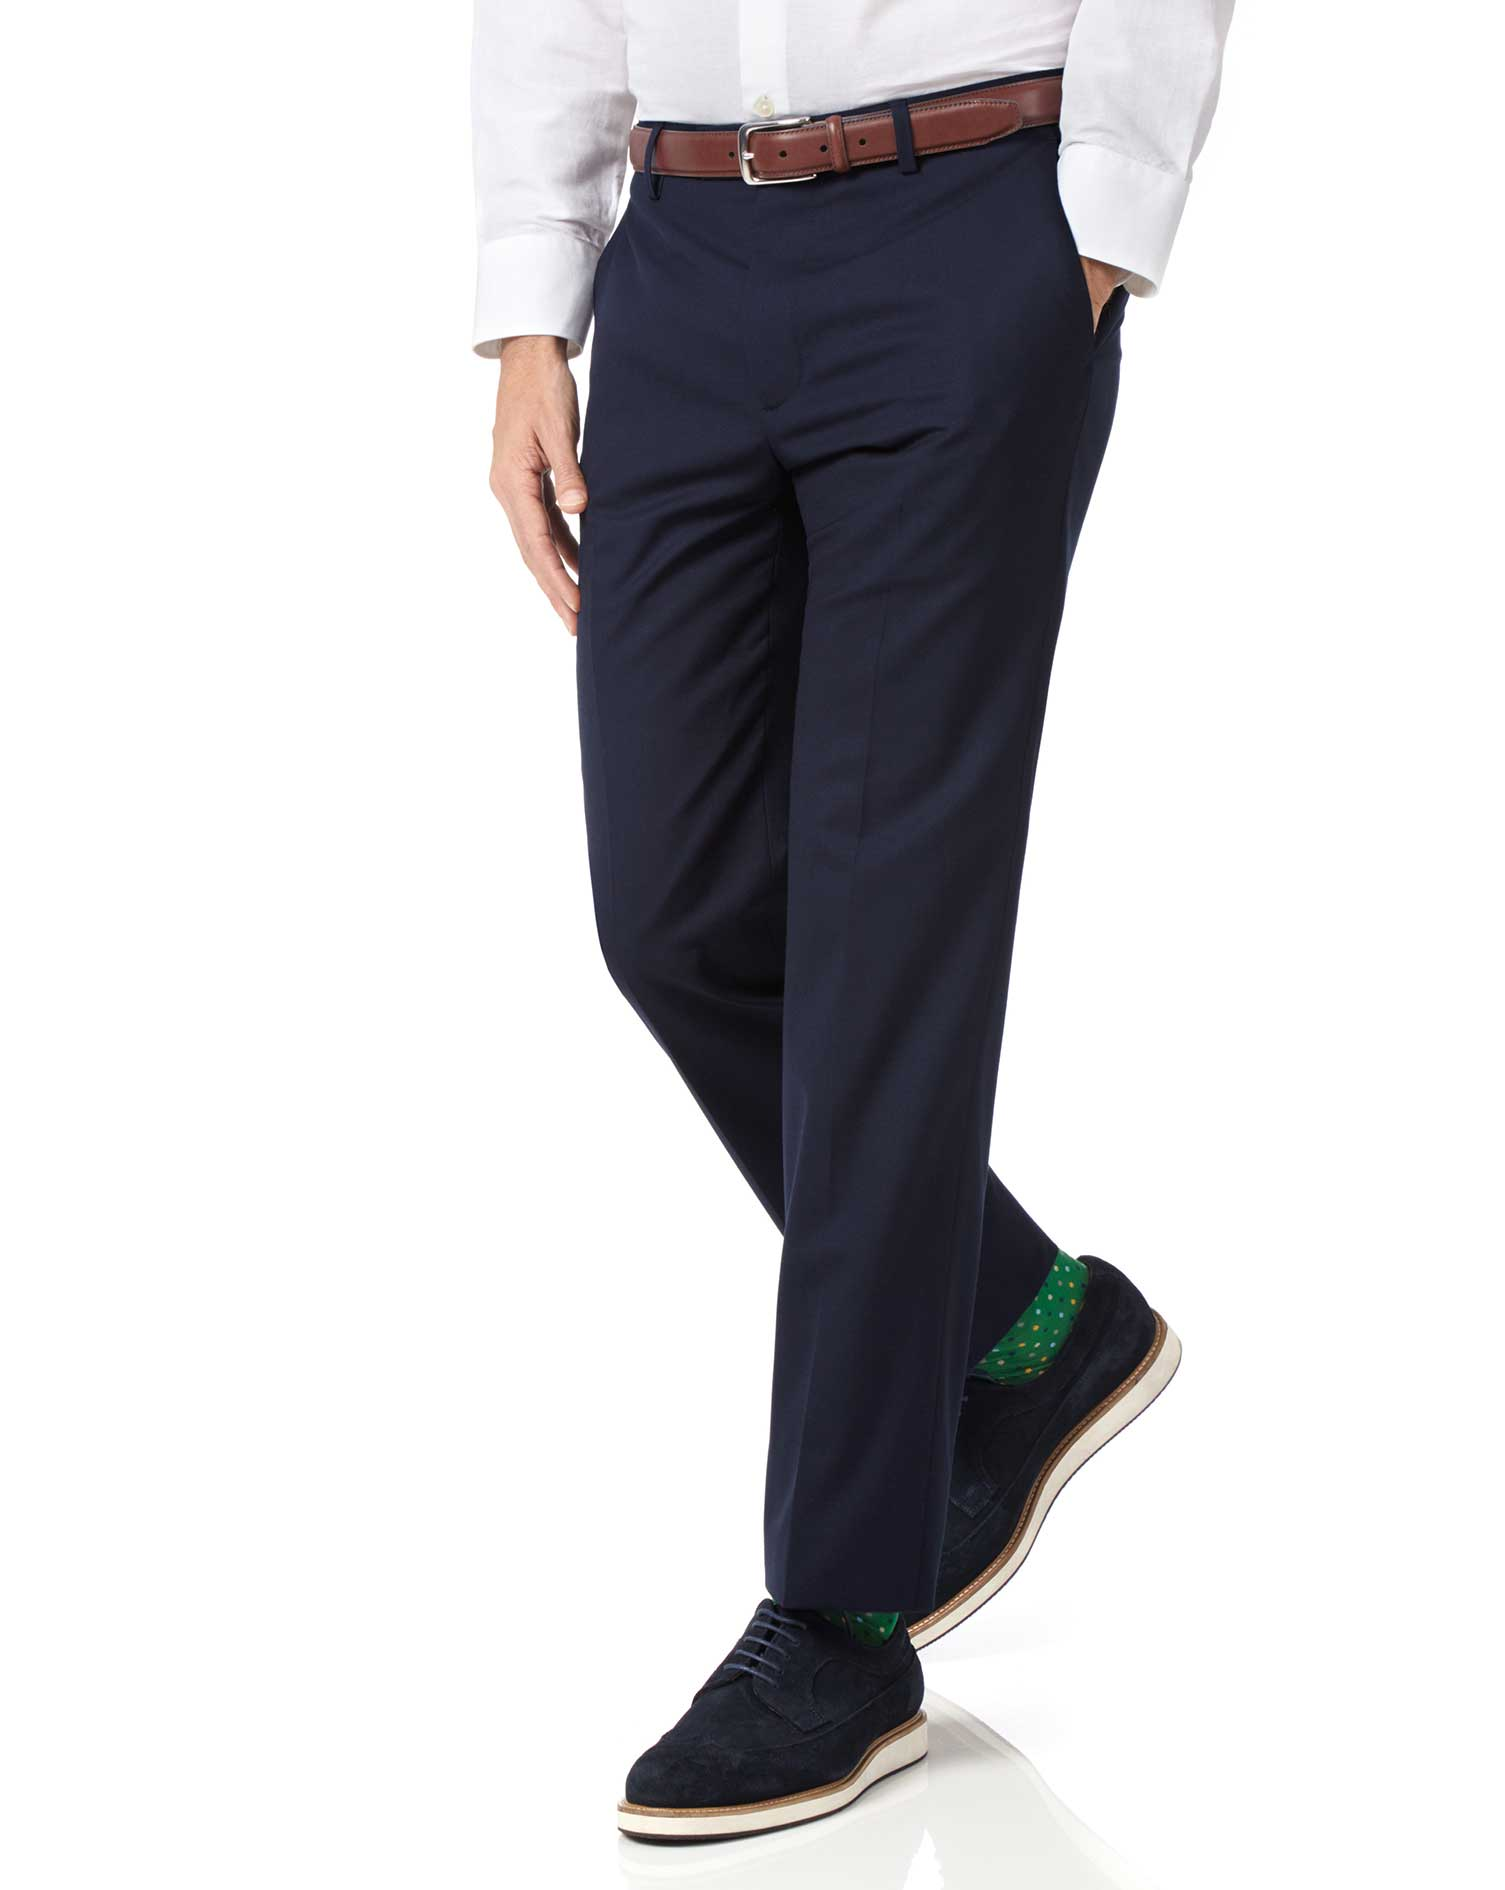 Navy Slim Fit Lightweight Wool Trousers Size W40 L30 by Charles Tyrwhitt